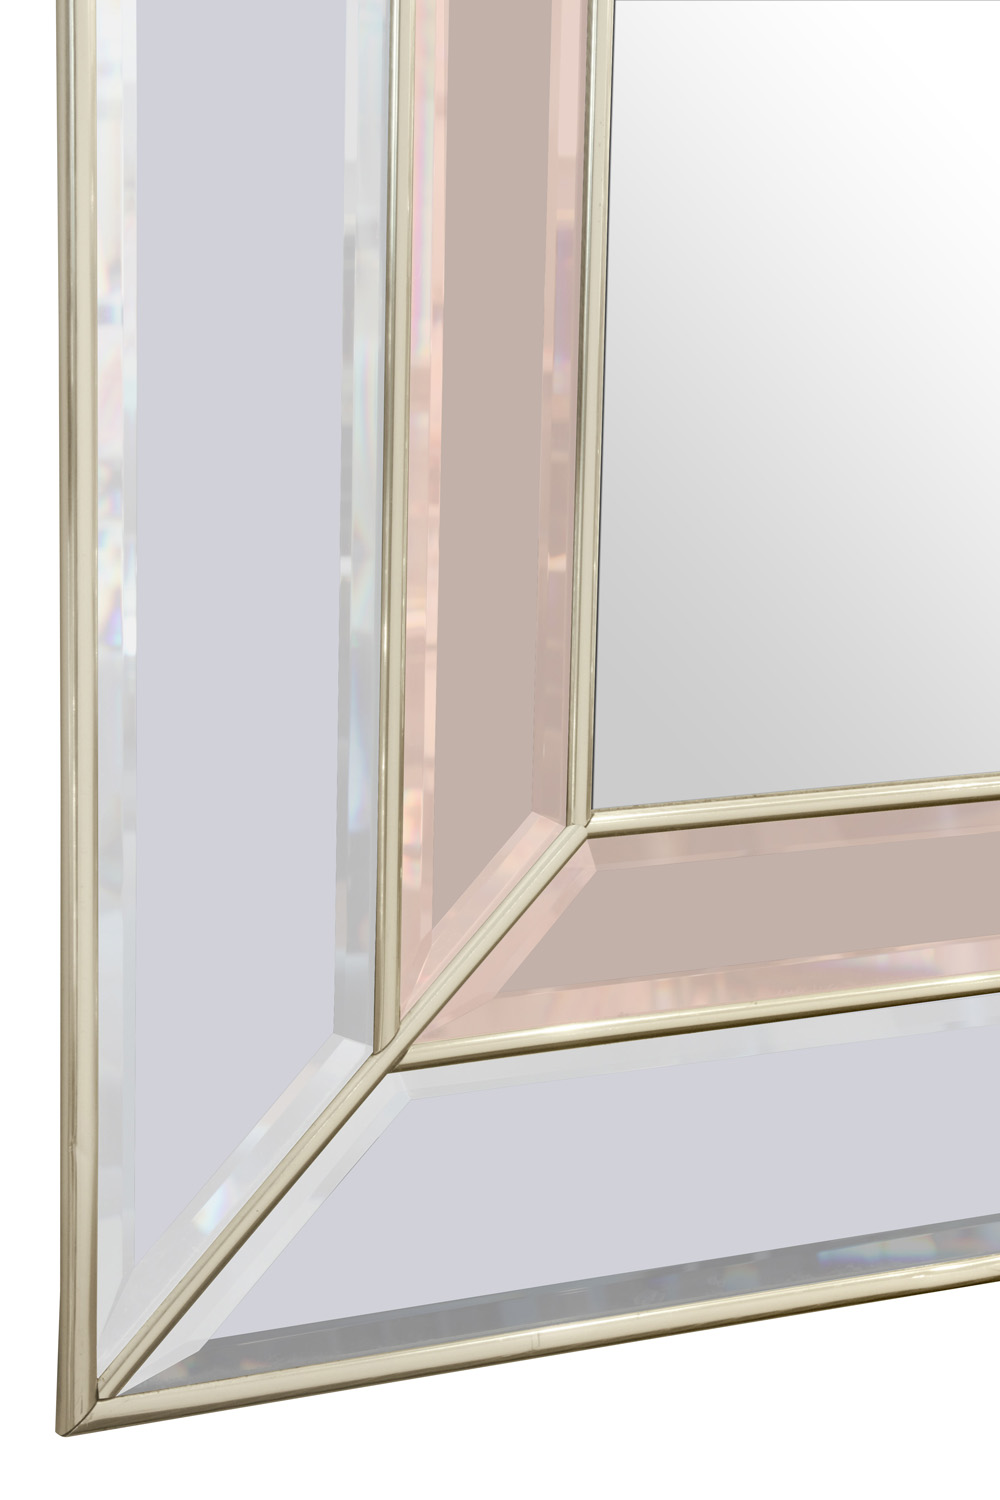 70's 55 Art Deco champ+brass trim mirror195 detail2 hires.jpg